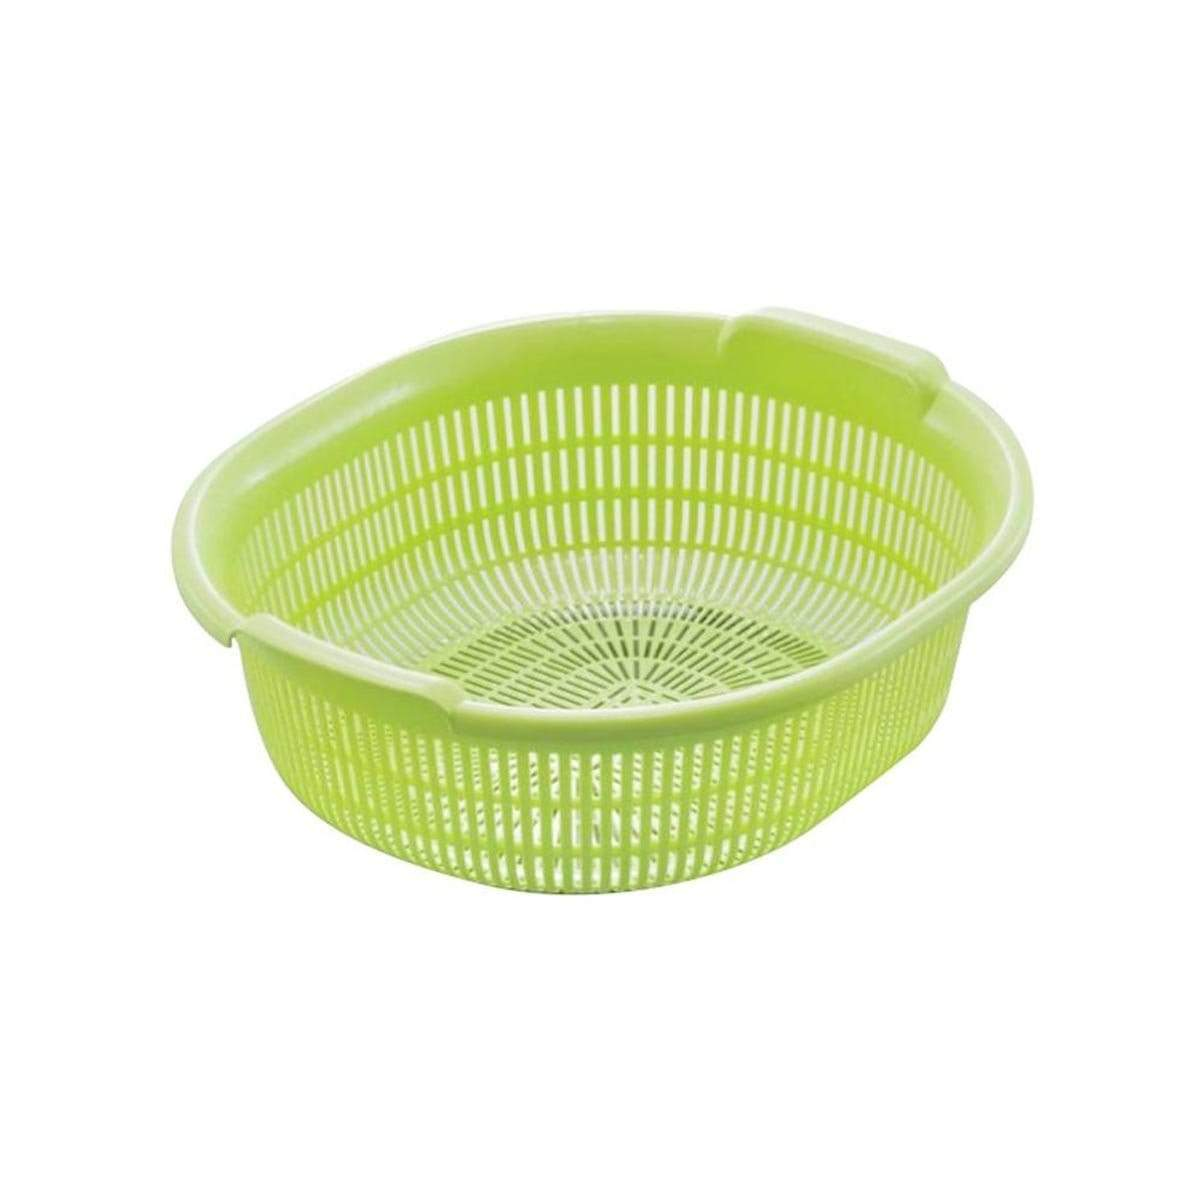 Japanese Plastic Colander Washing Draining Oval Basket Green